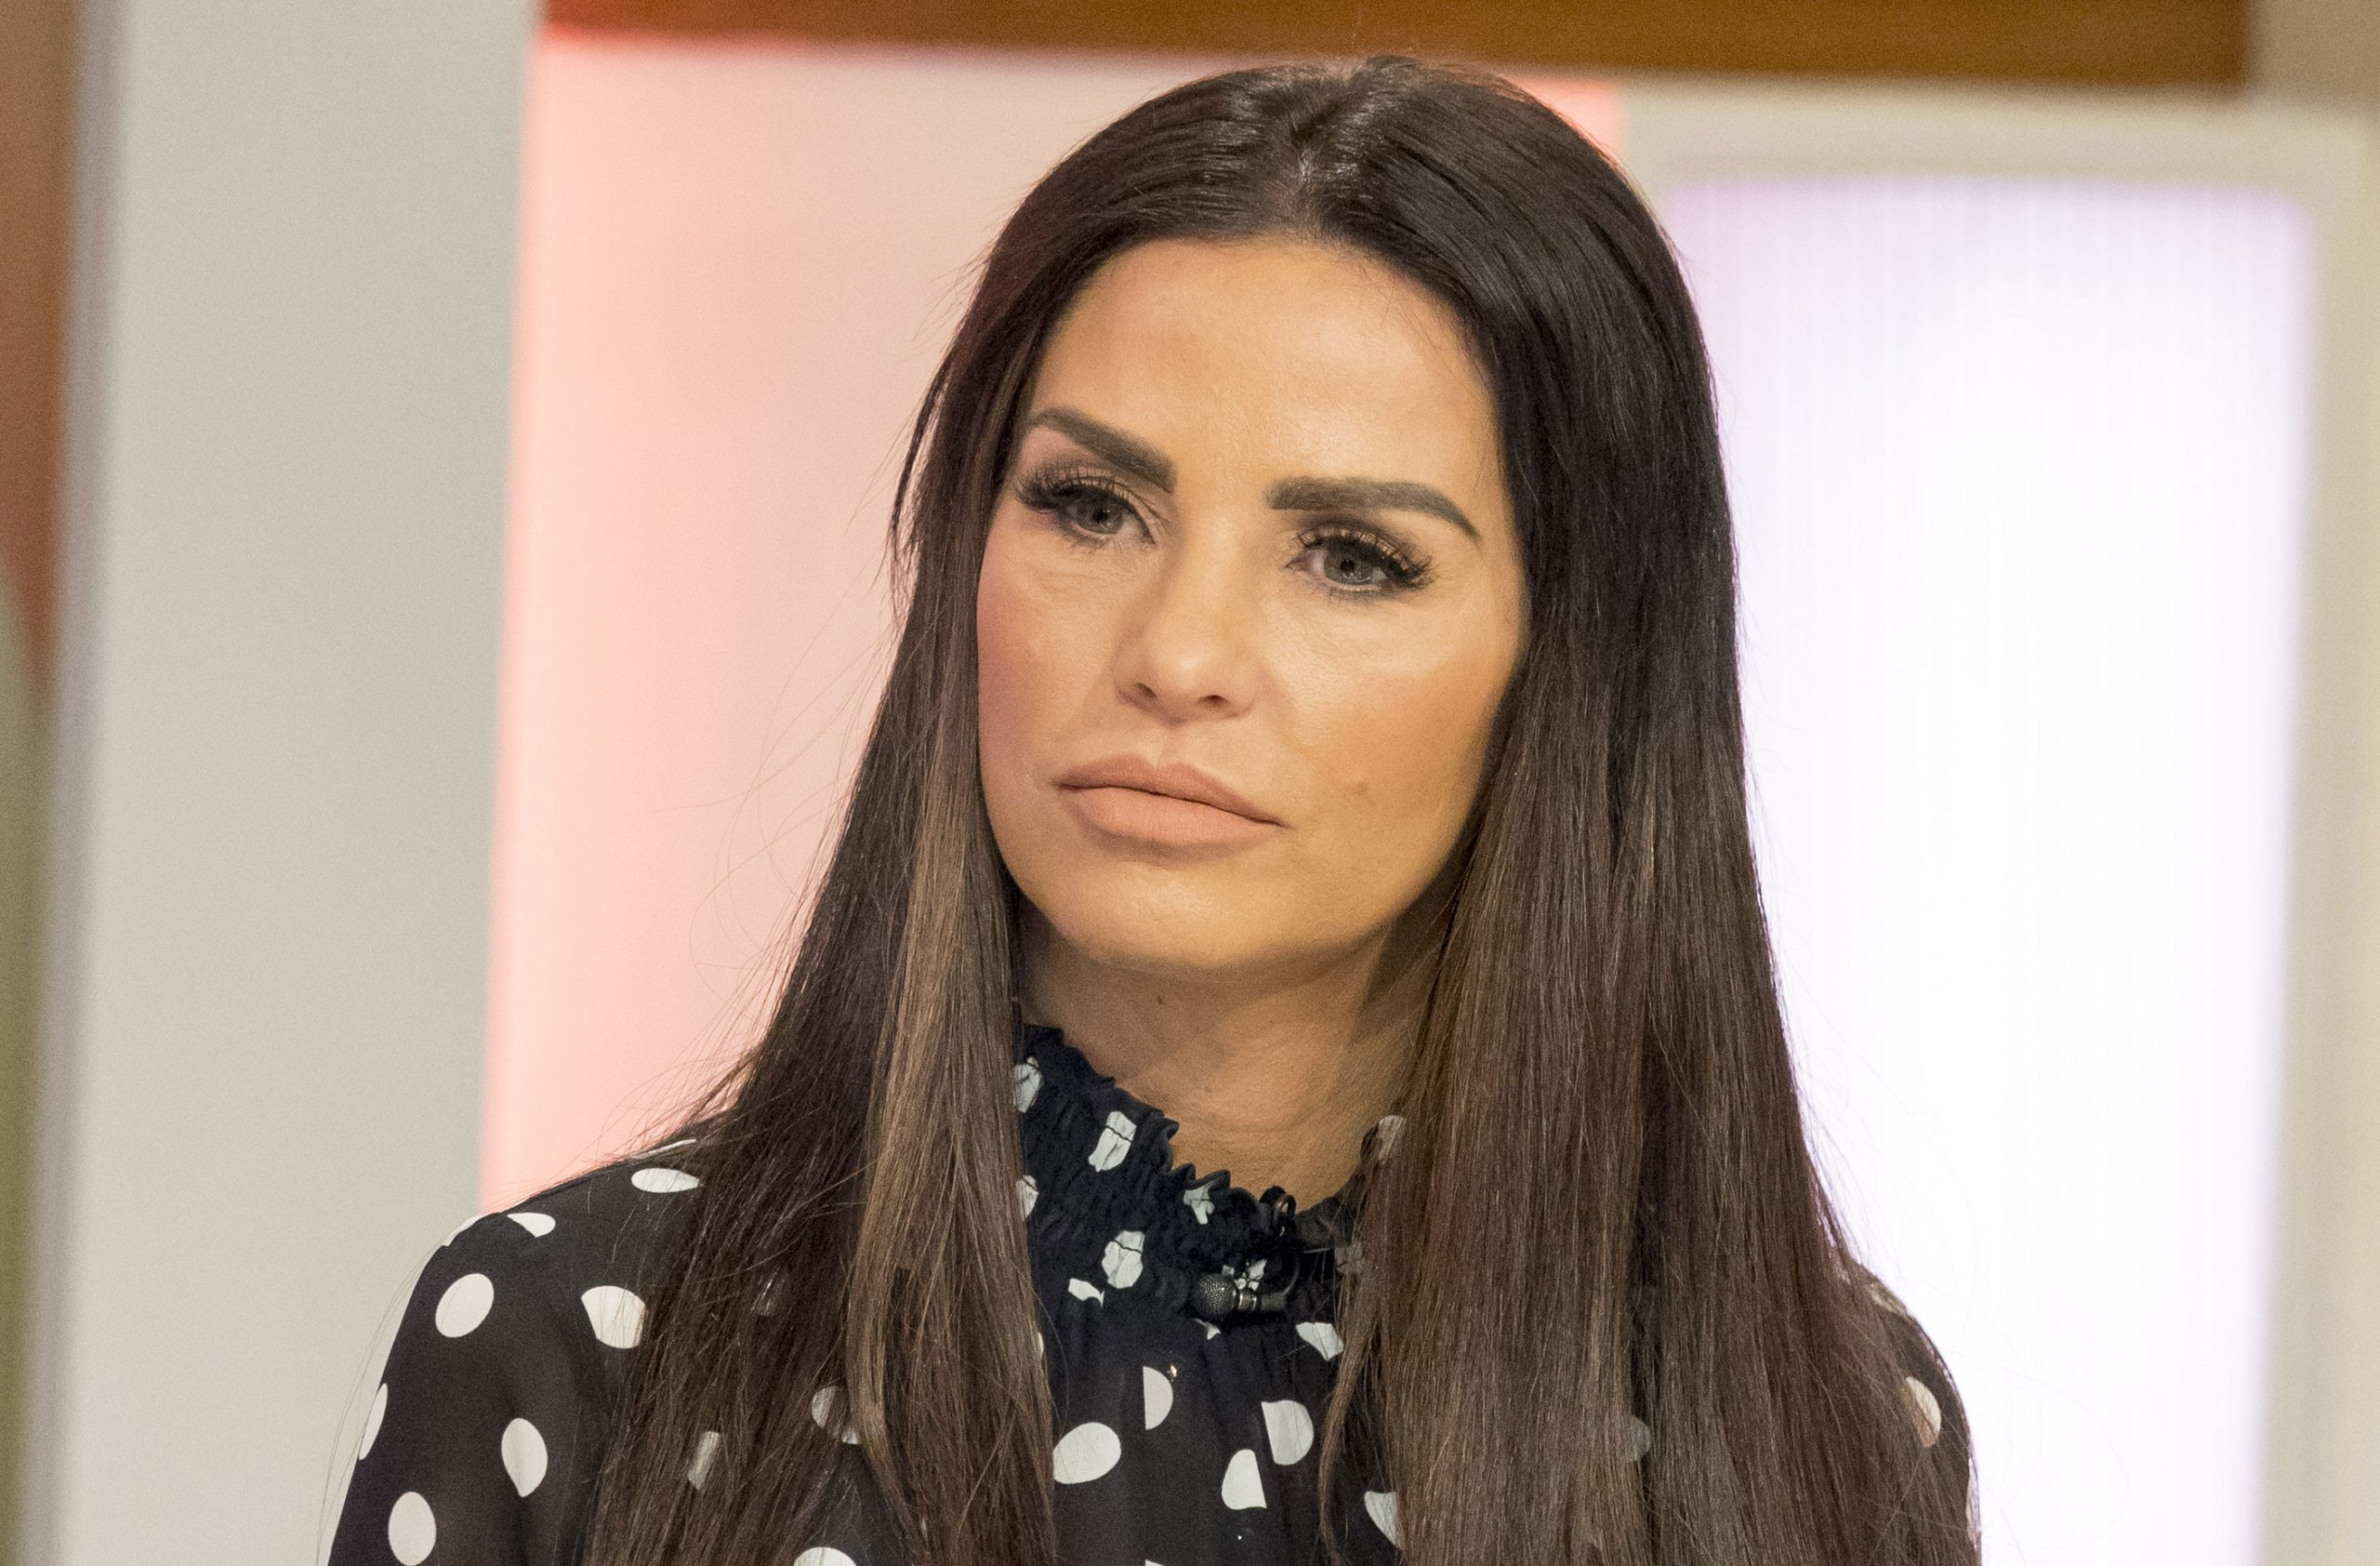 Katie Price Sparks Debate With Video Of Four Year Old Son Jett With Long Hair Goodtoknow